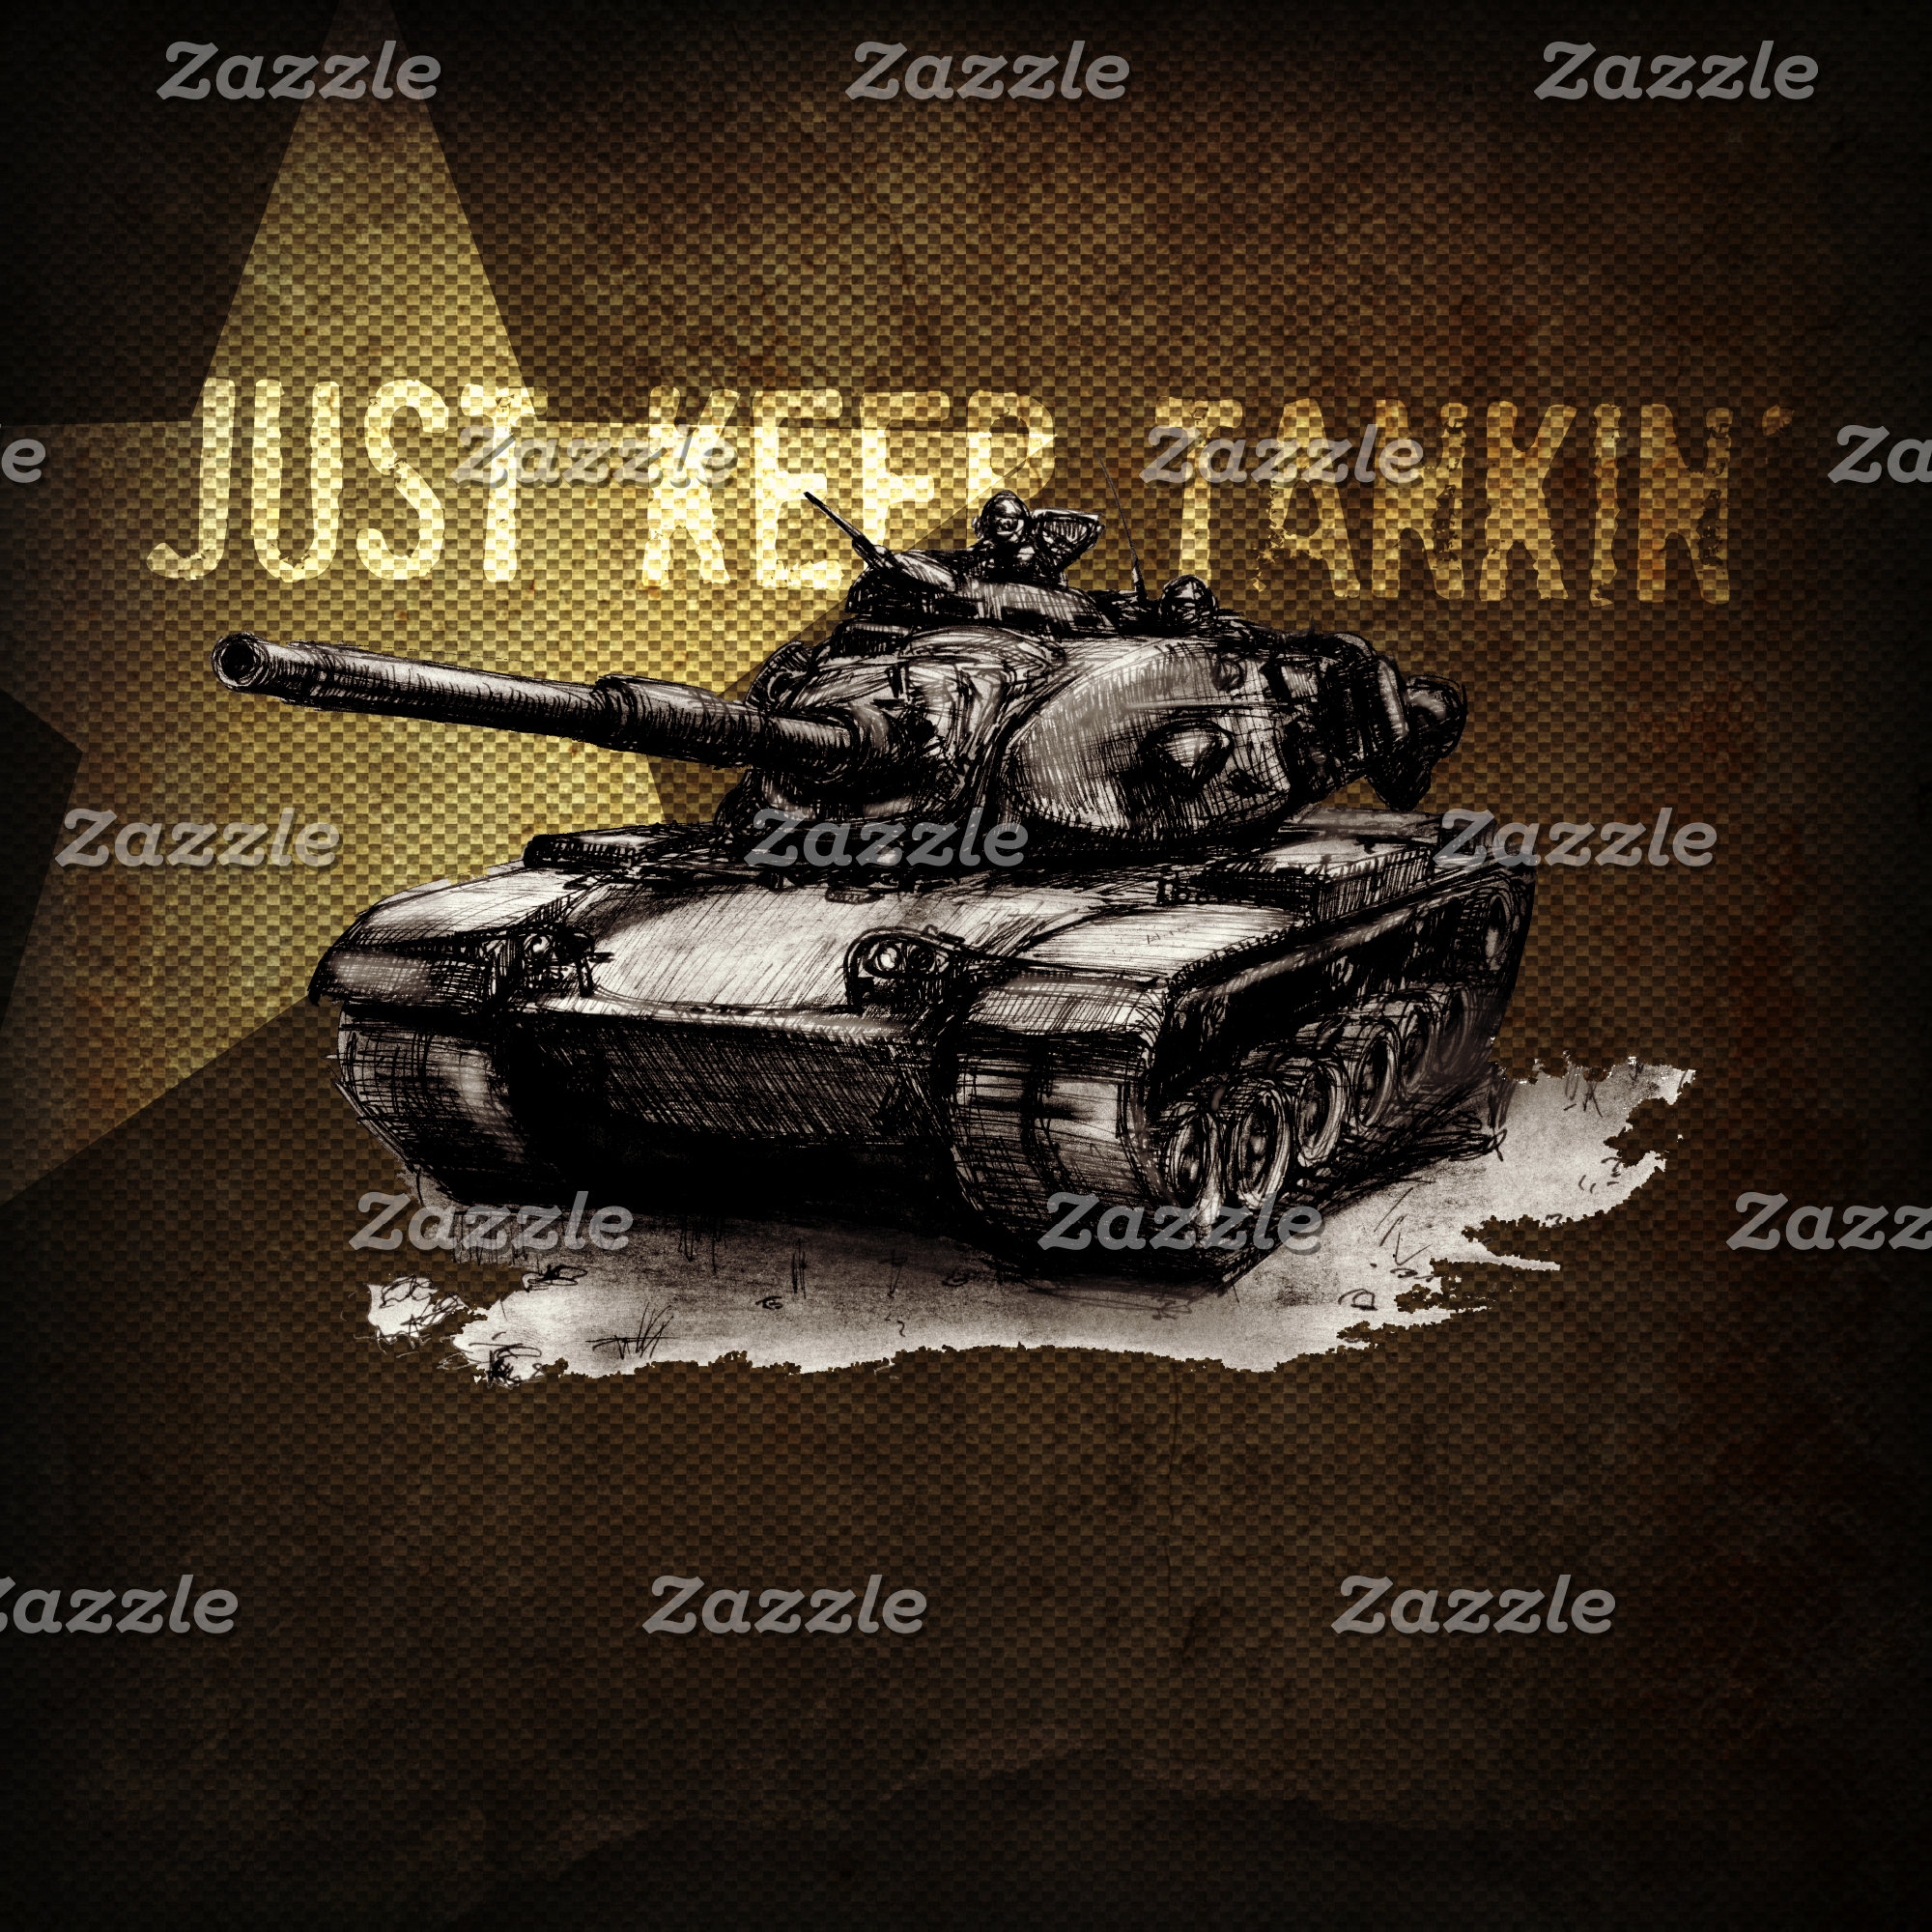 M60 Main Battle Tank